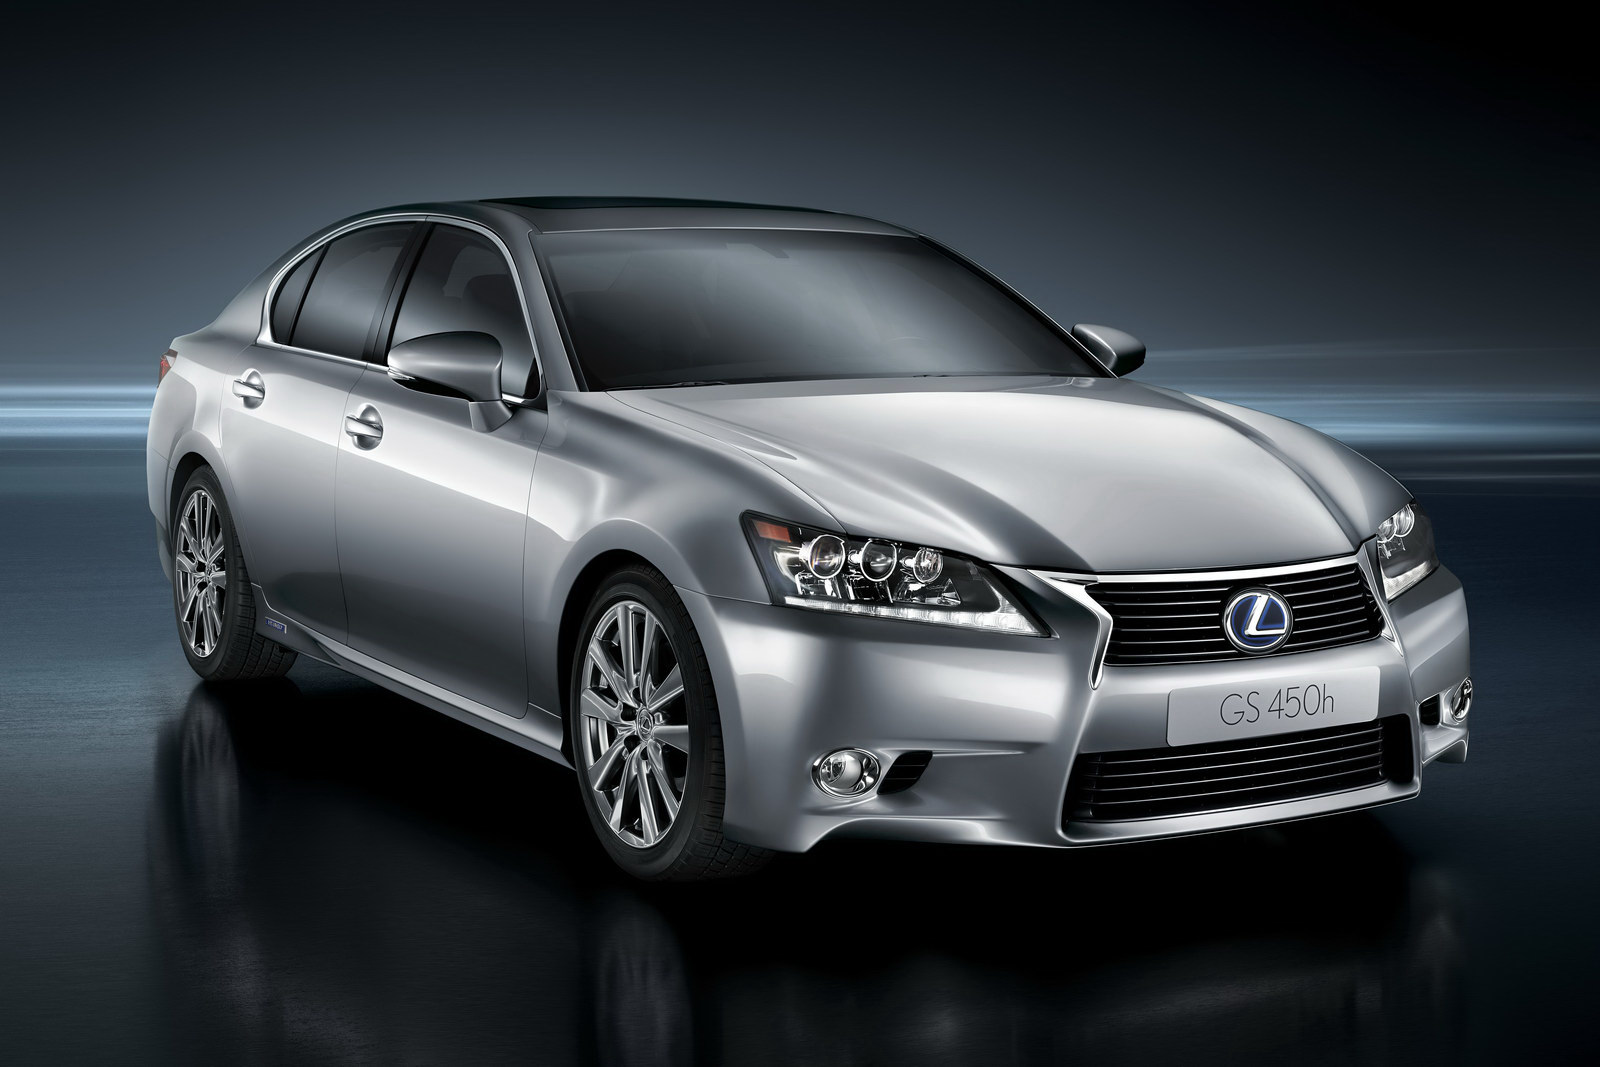 2013 lexus gs 450h officially revealed ahead of frankfurt debut autoevolution. Black Bedroom Furniture Sets. Home Design Ideas